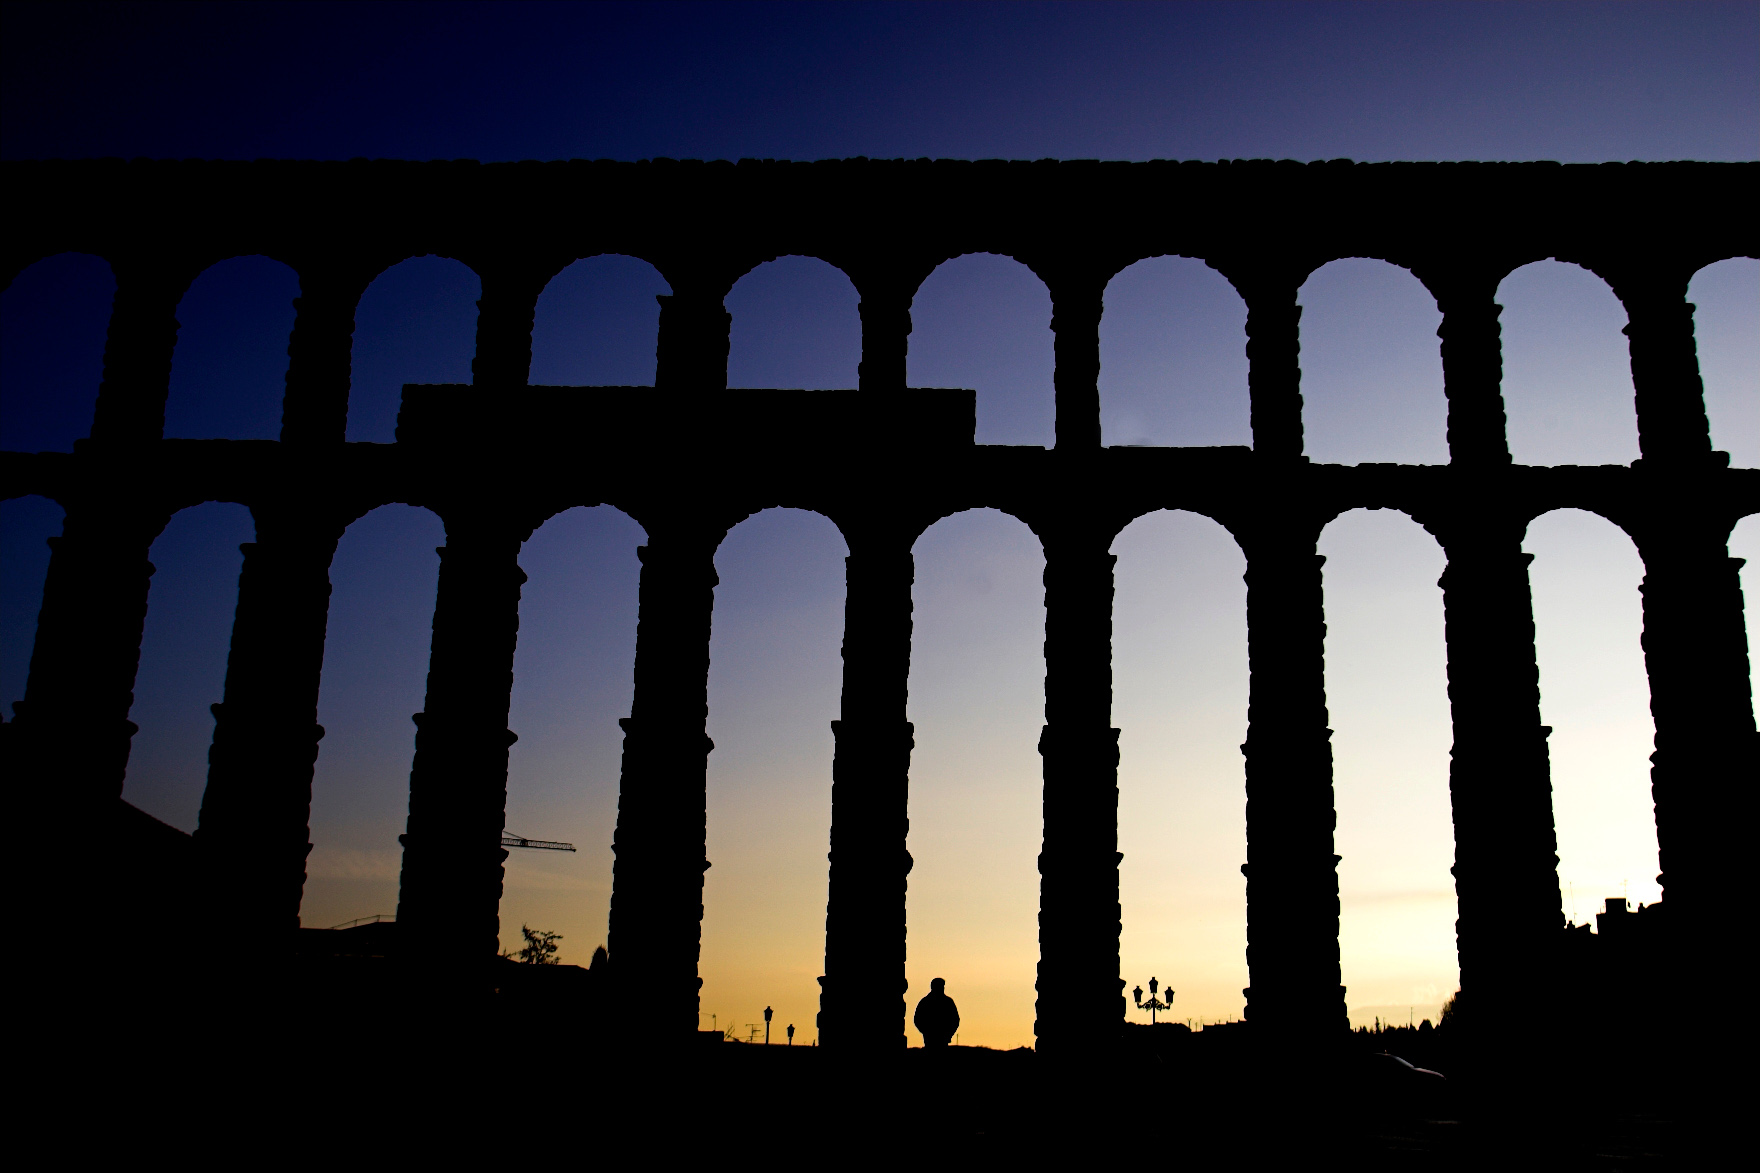 A man passes in front of Segovia's 2,000-year-old Roman aqueduct in central Spain April 8, 2006. Segovia's aqueduct, which stretches from the walls of the old town to the edges of Sierra de Guadarrama, is one of the greatest surviving monuments of Roman engineering. Its construction is considered a masterpiece because its 20,400 stone blocks are not united by mortar or concrete. REUTERS/Victor Fraile BEST QUALITY AVAILABLE - GM1DSIMQSHAA